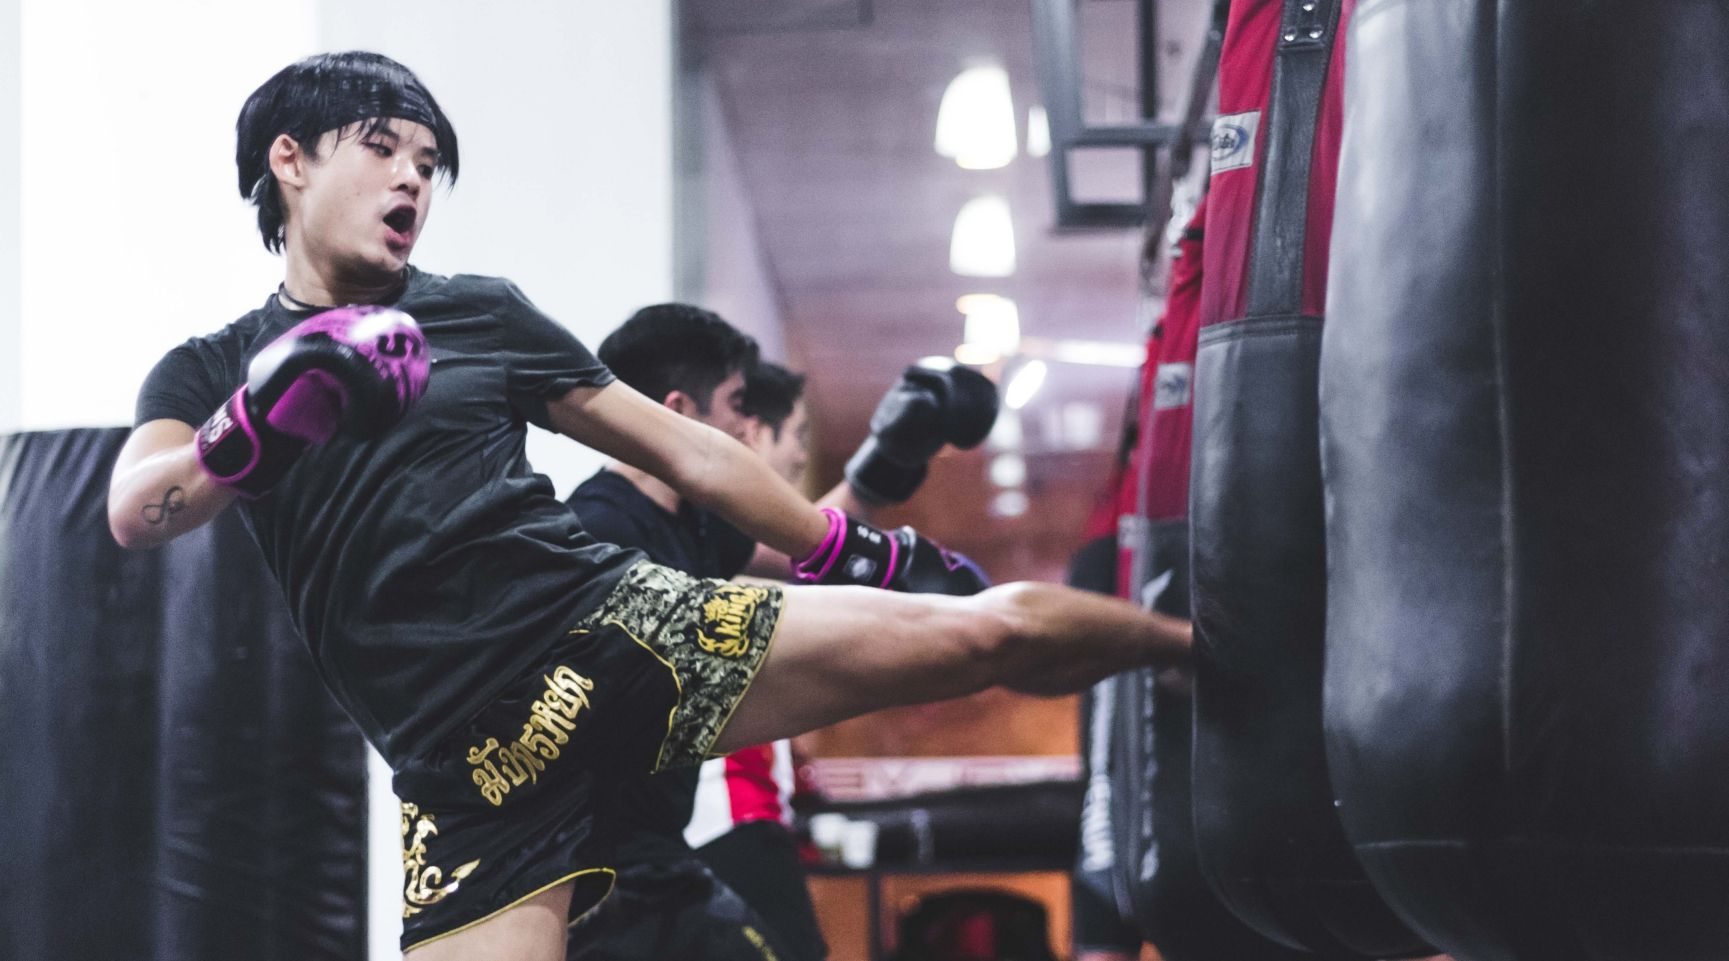 A Muay Thai student throws a left kick at a heavy bag during a Muay Thai class.